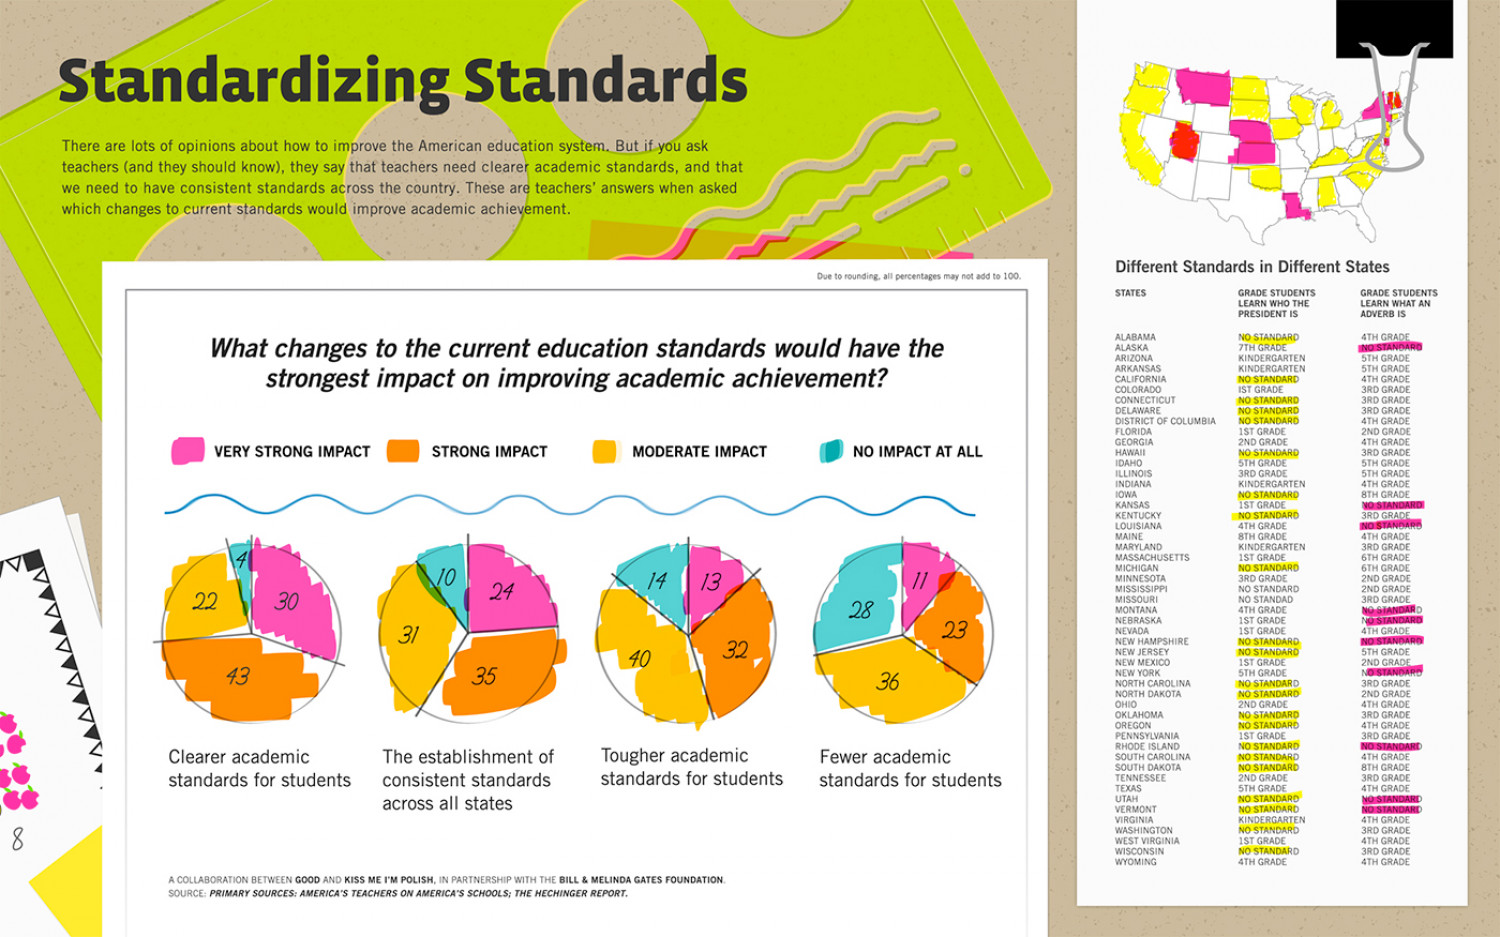 Standardizing Standards in Education Infographic